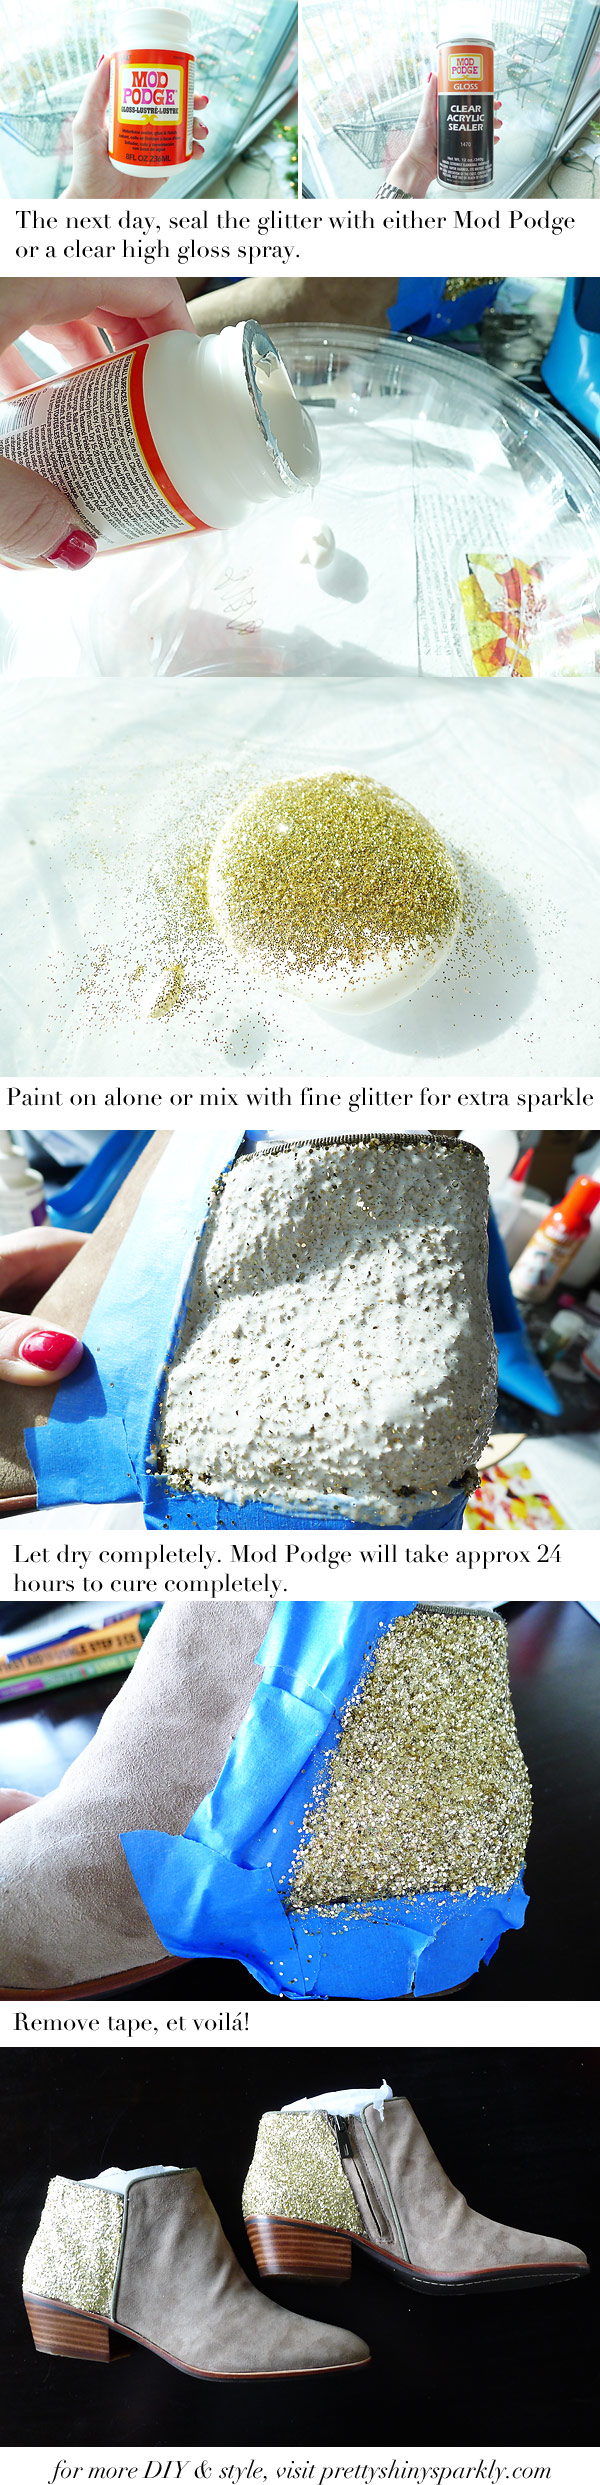 diy glitter ankle boot instructions part 2